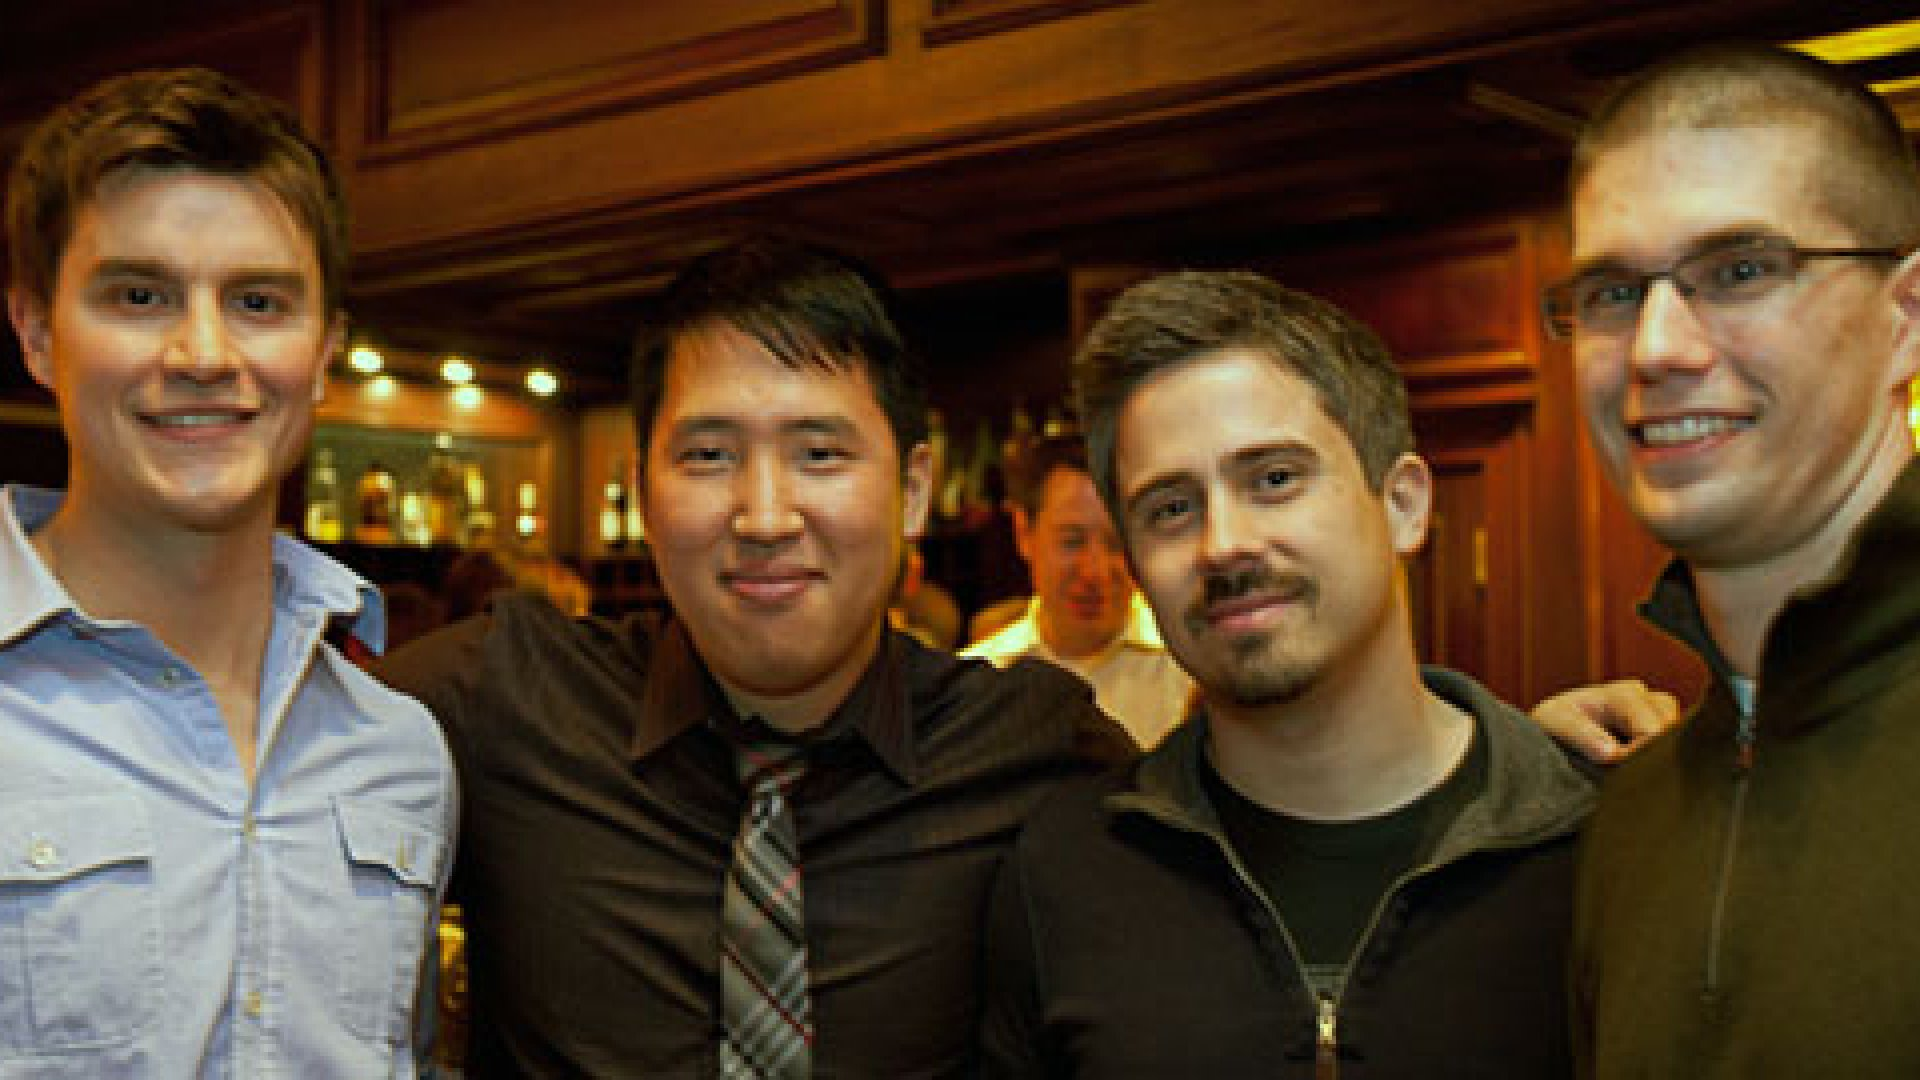 Sonoma Partner's flexible schedule allows employes to find a perfect work-life balance. Here (from left to right) employees Brad Bosak, Augustine Park, Peter Majer, and Neil Erickson kick back and enjoy the company's 2010 holiday party.